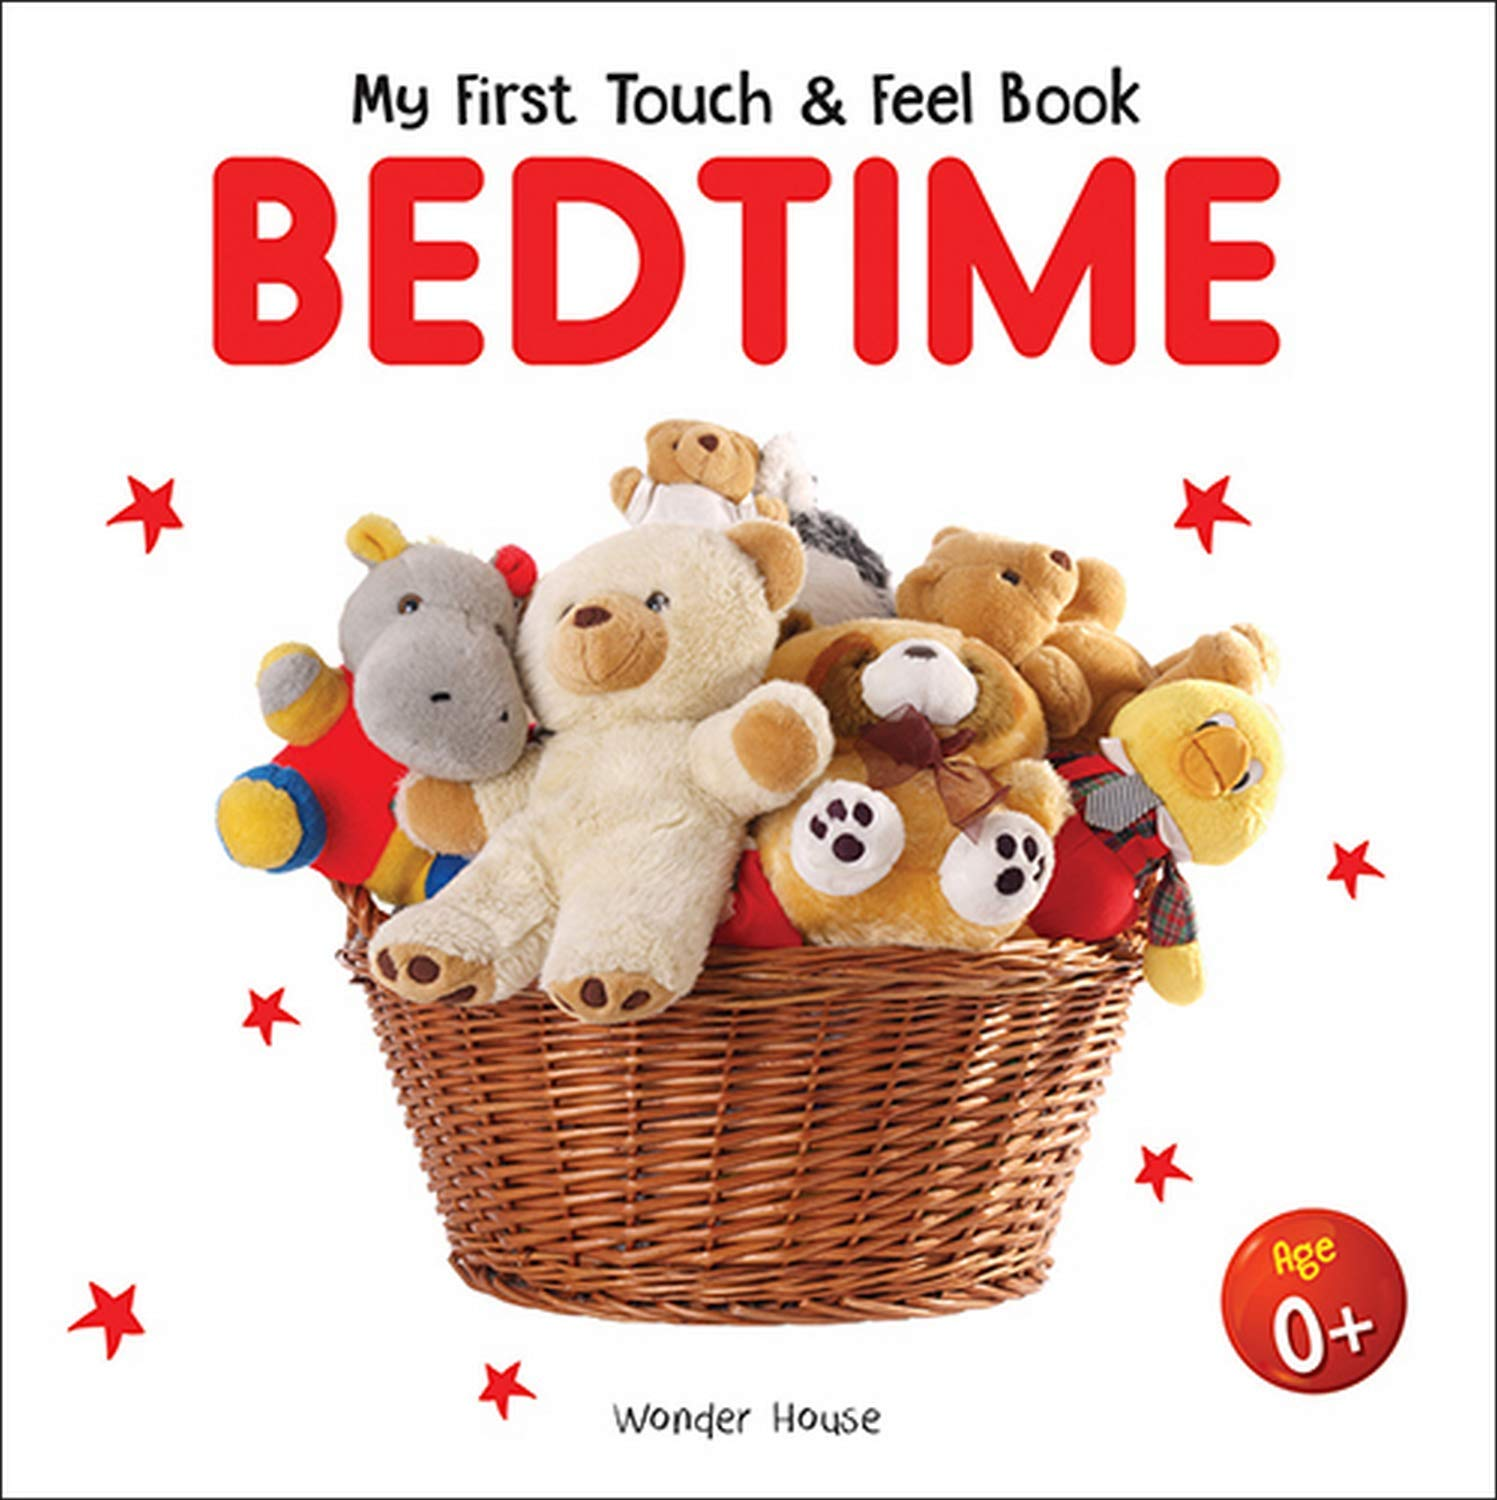 My First Book Of Touch And Feel - Bedtime : Touch And Feel Board Book For Children